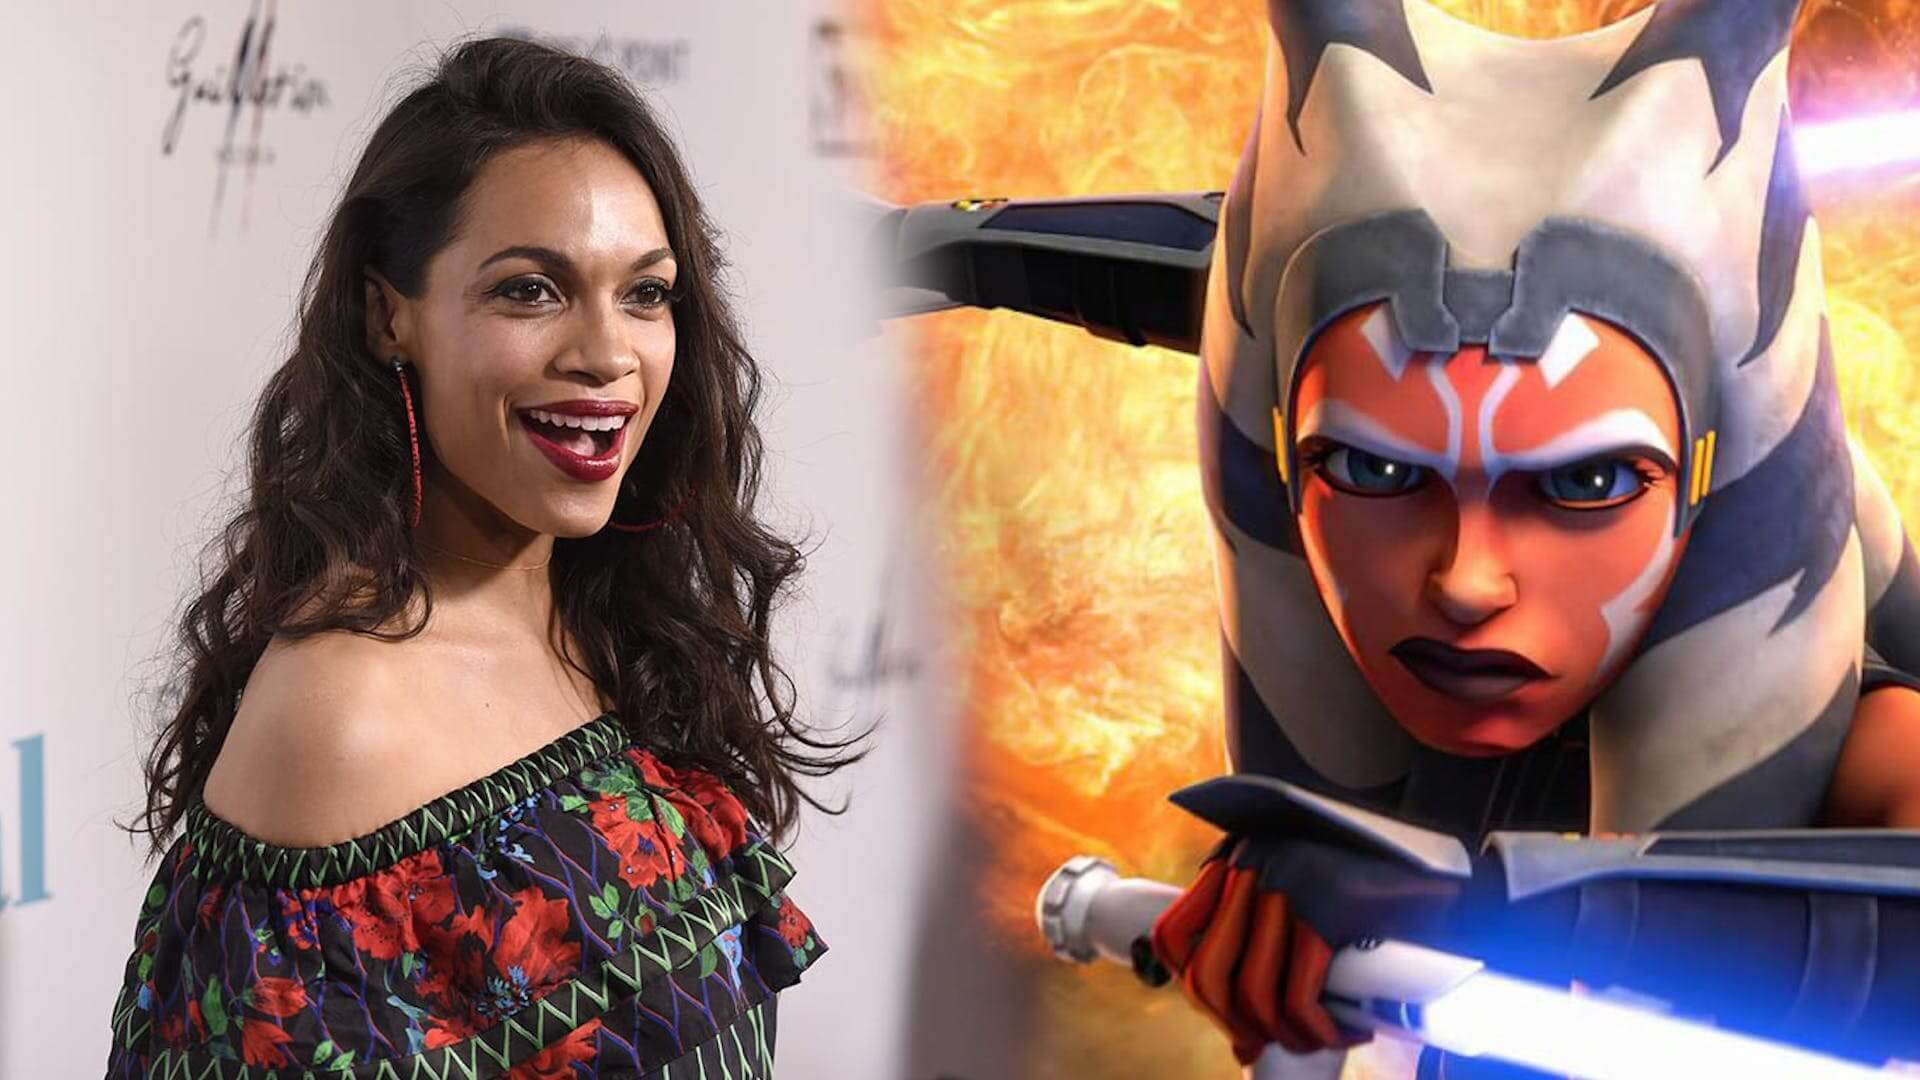 Rosario Dawson Says Her Casting in The Mandalorian isn't Official Yet